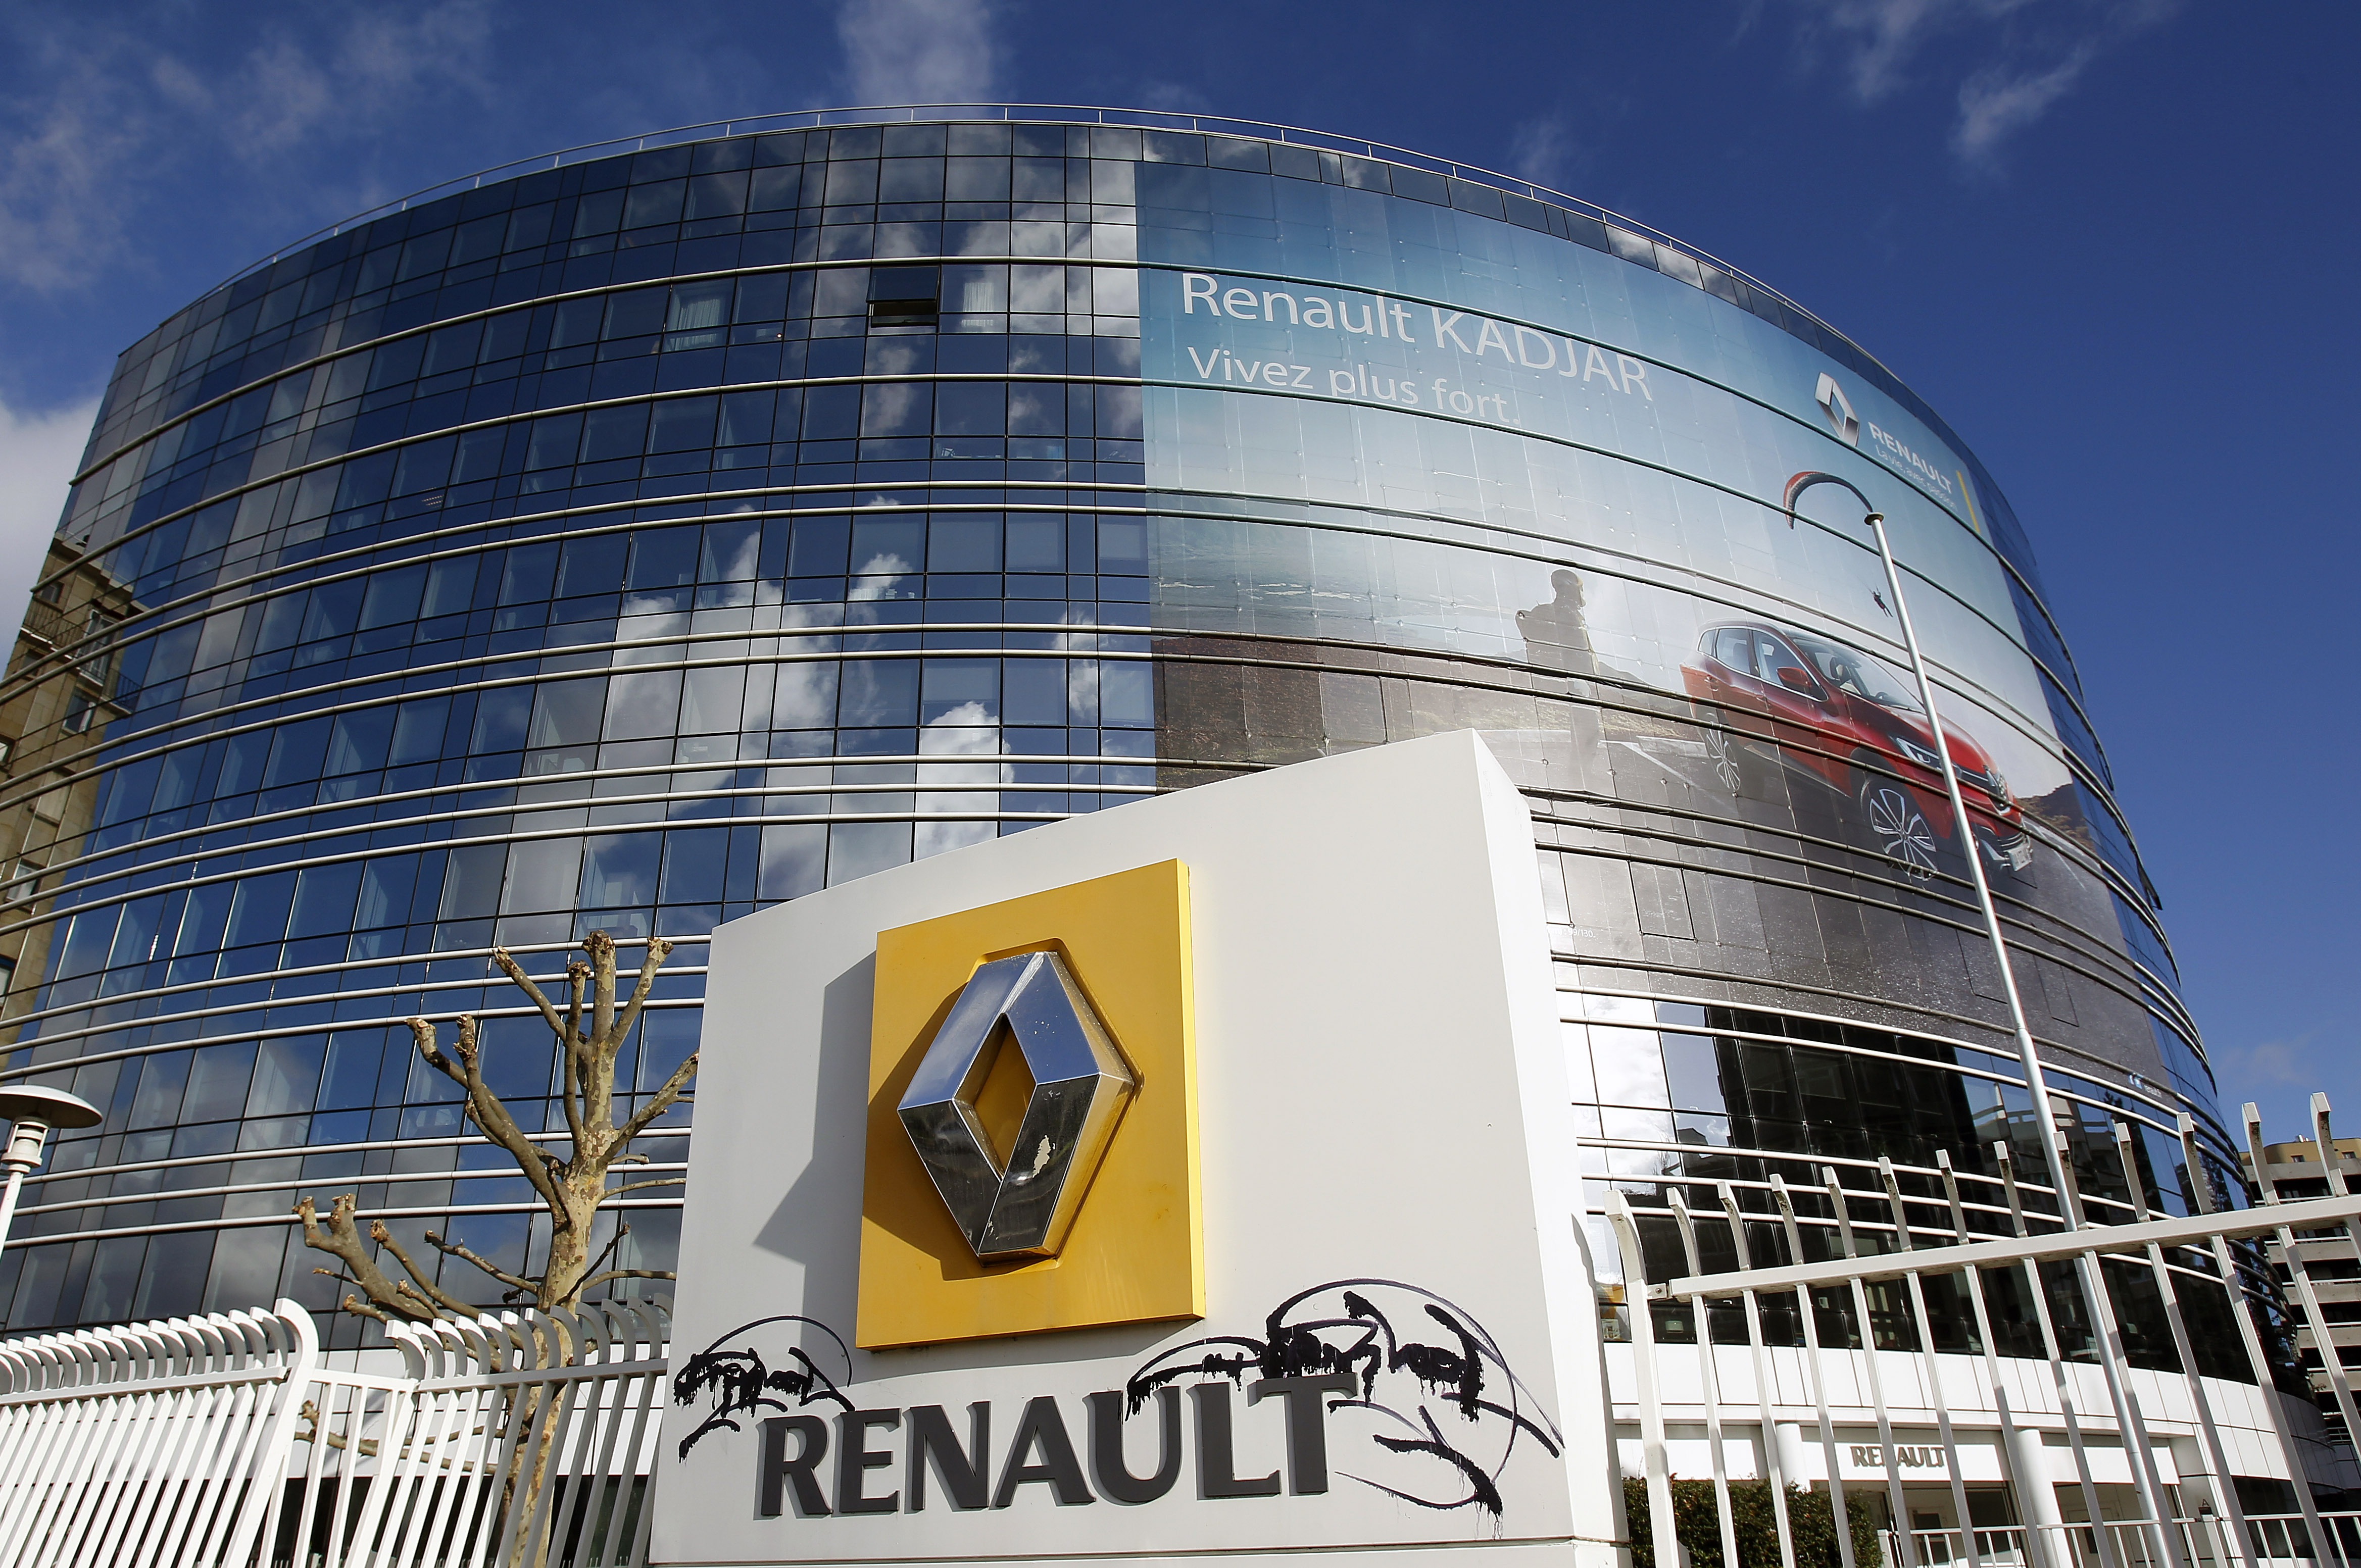 Renault Shares Drop After Reports Of Emissions Probe